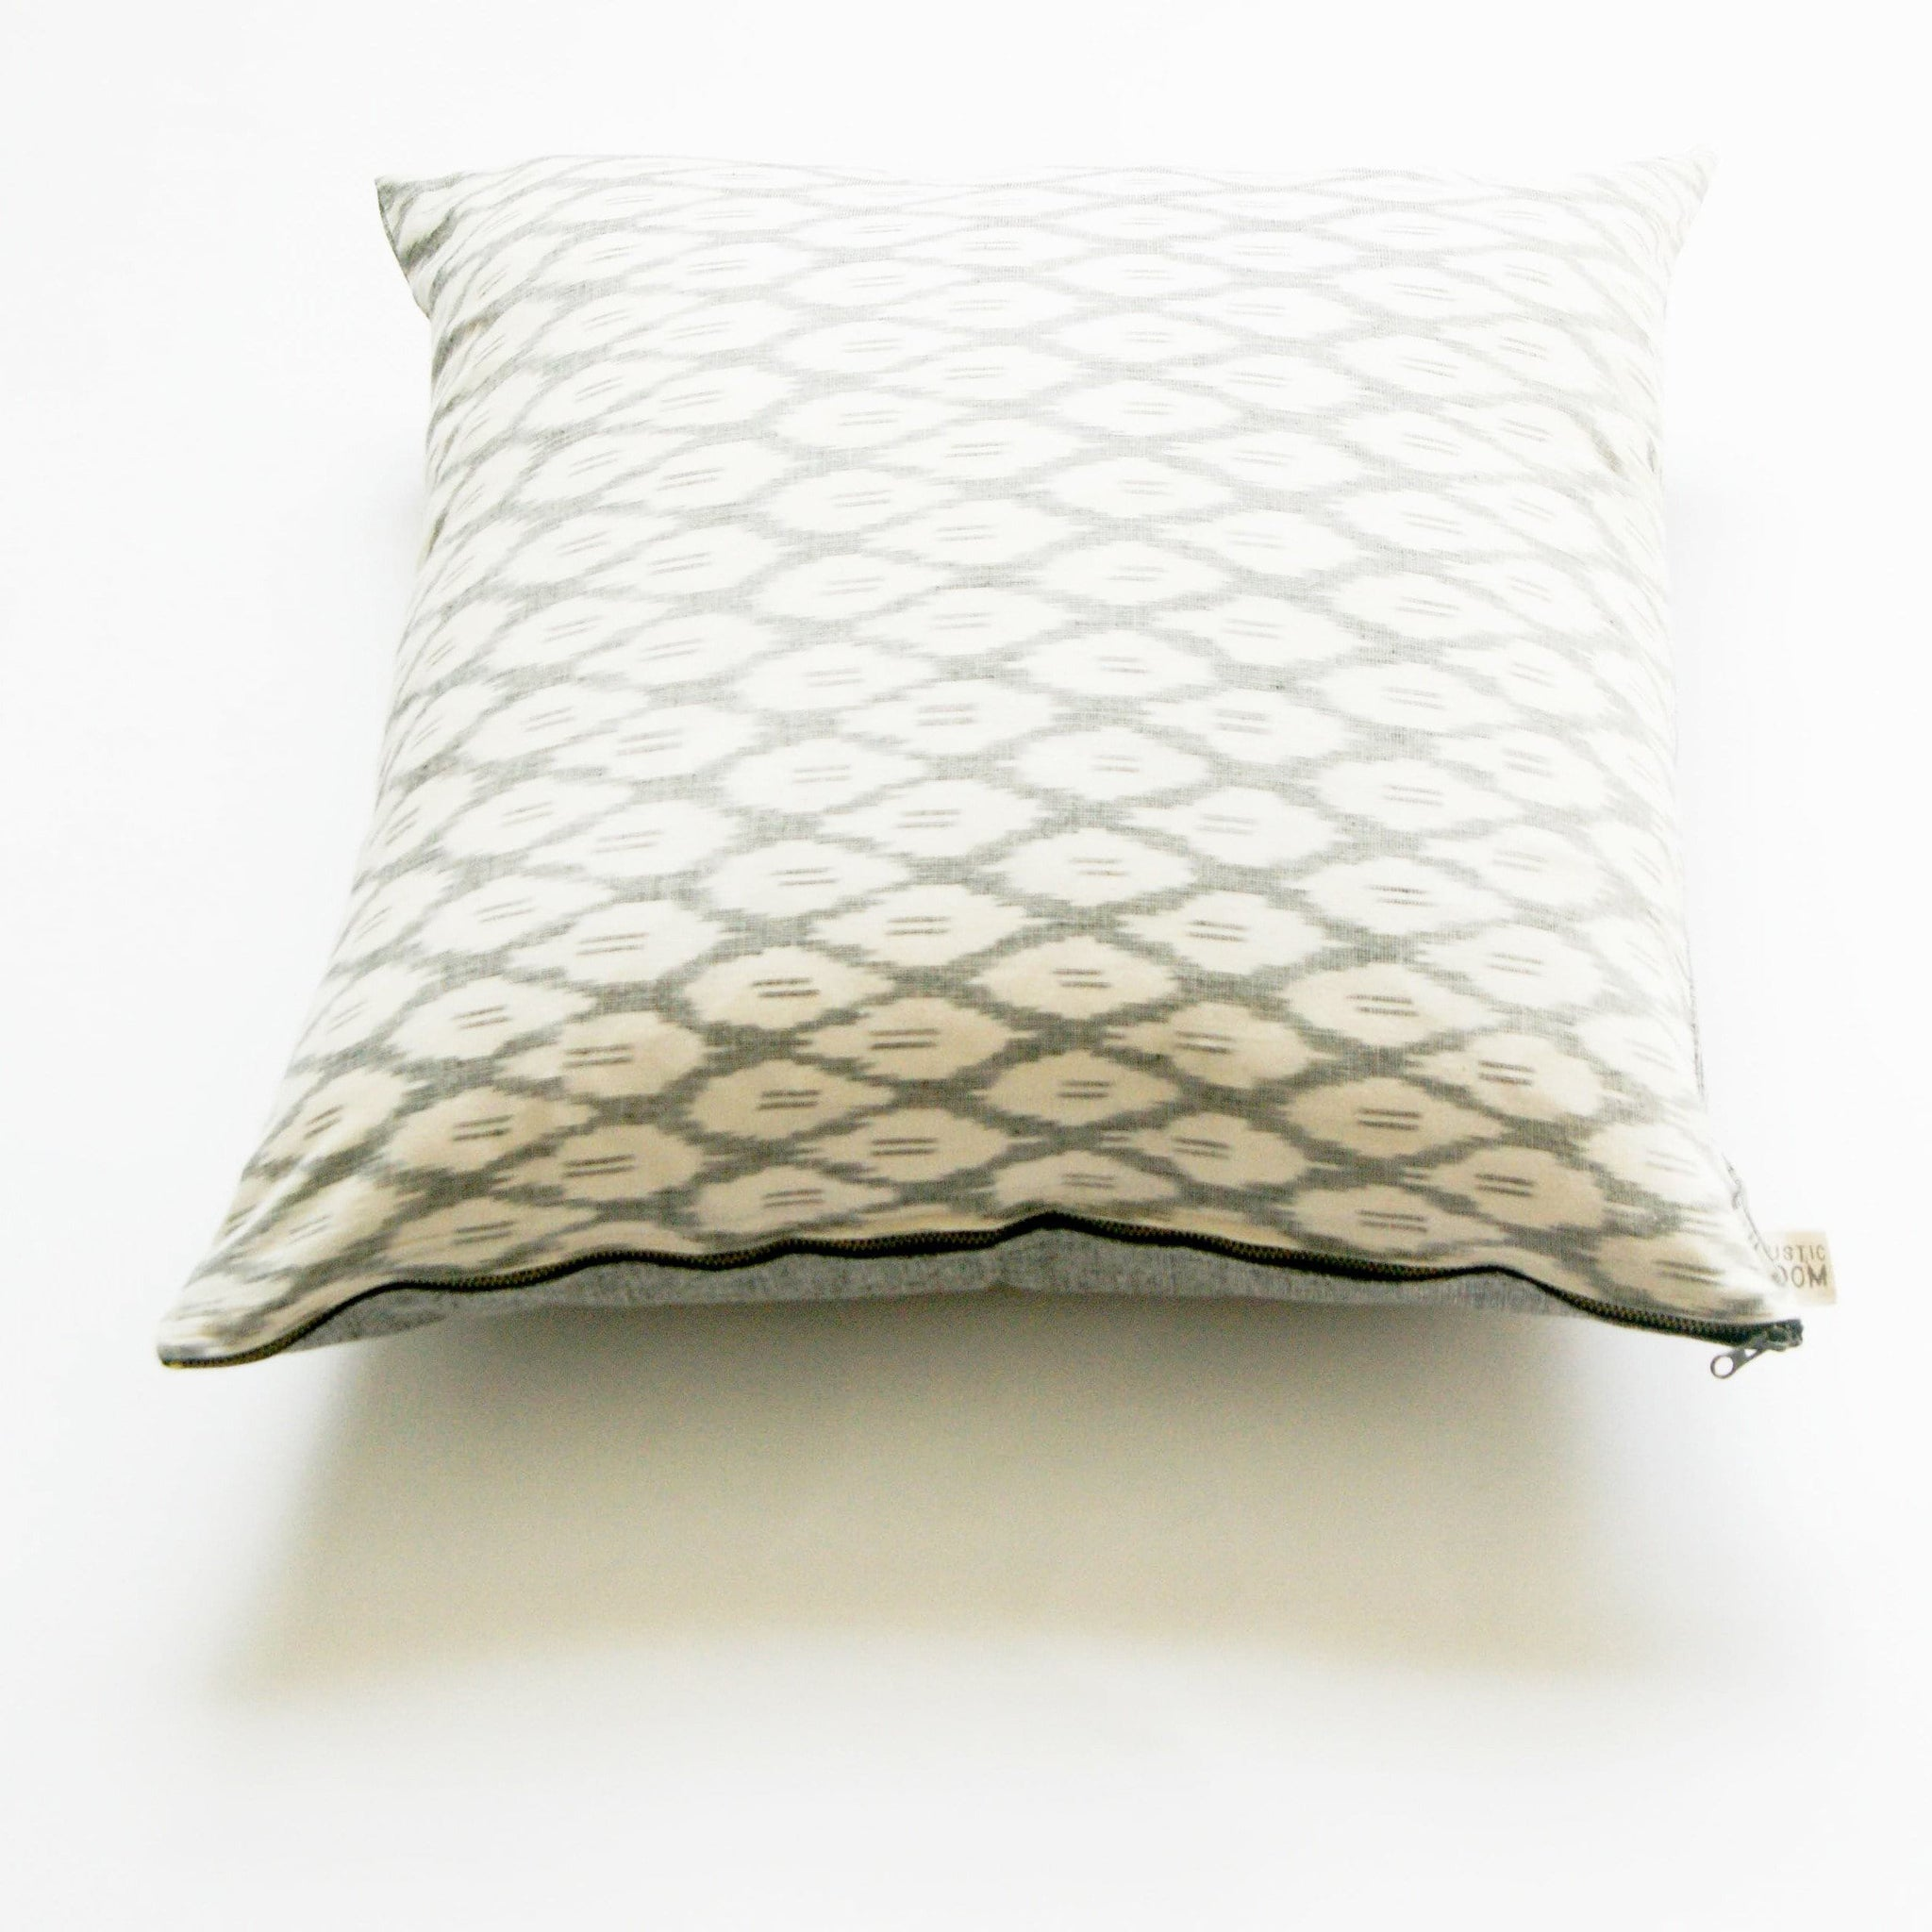 Woven Cotton Ikat Throw Pillow White Grey Ogee